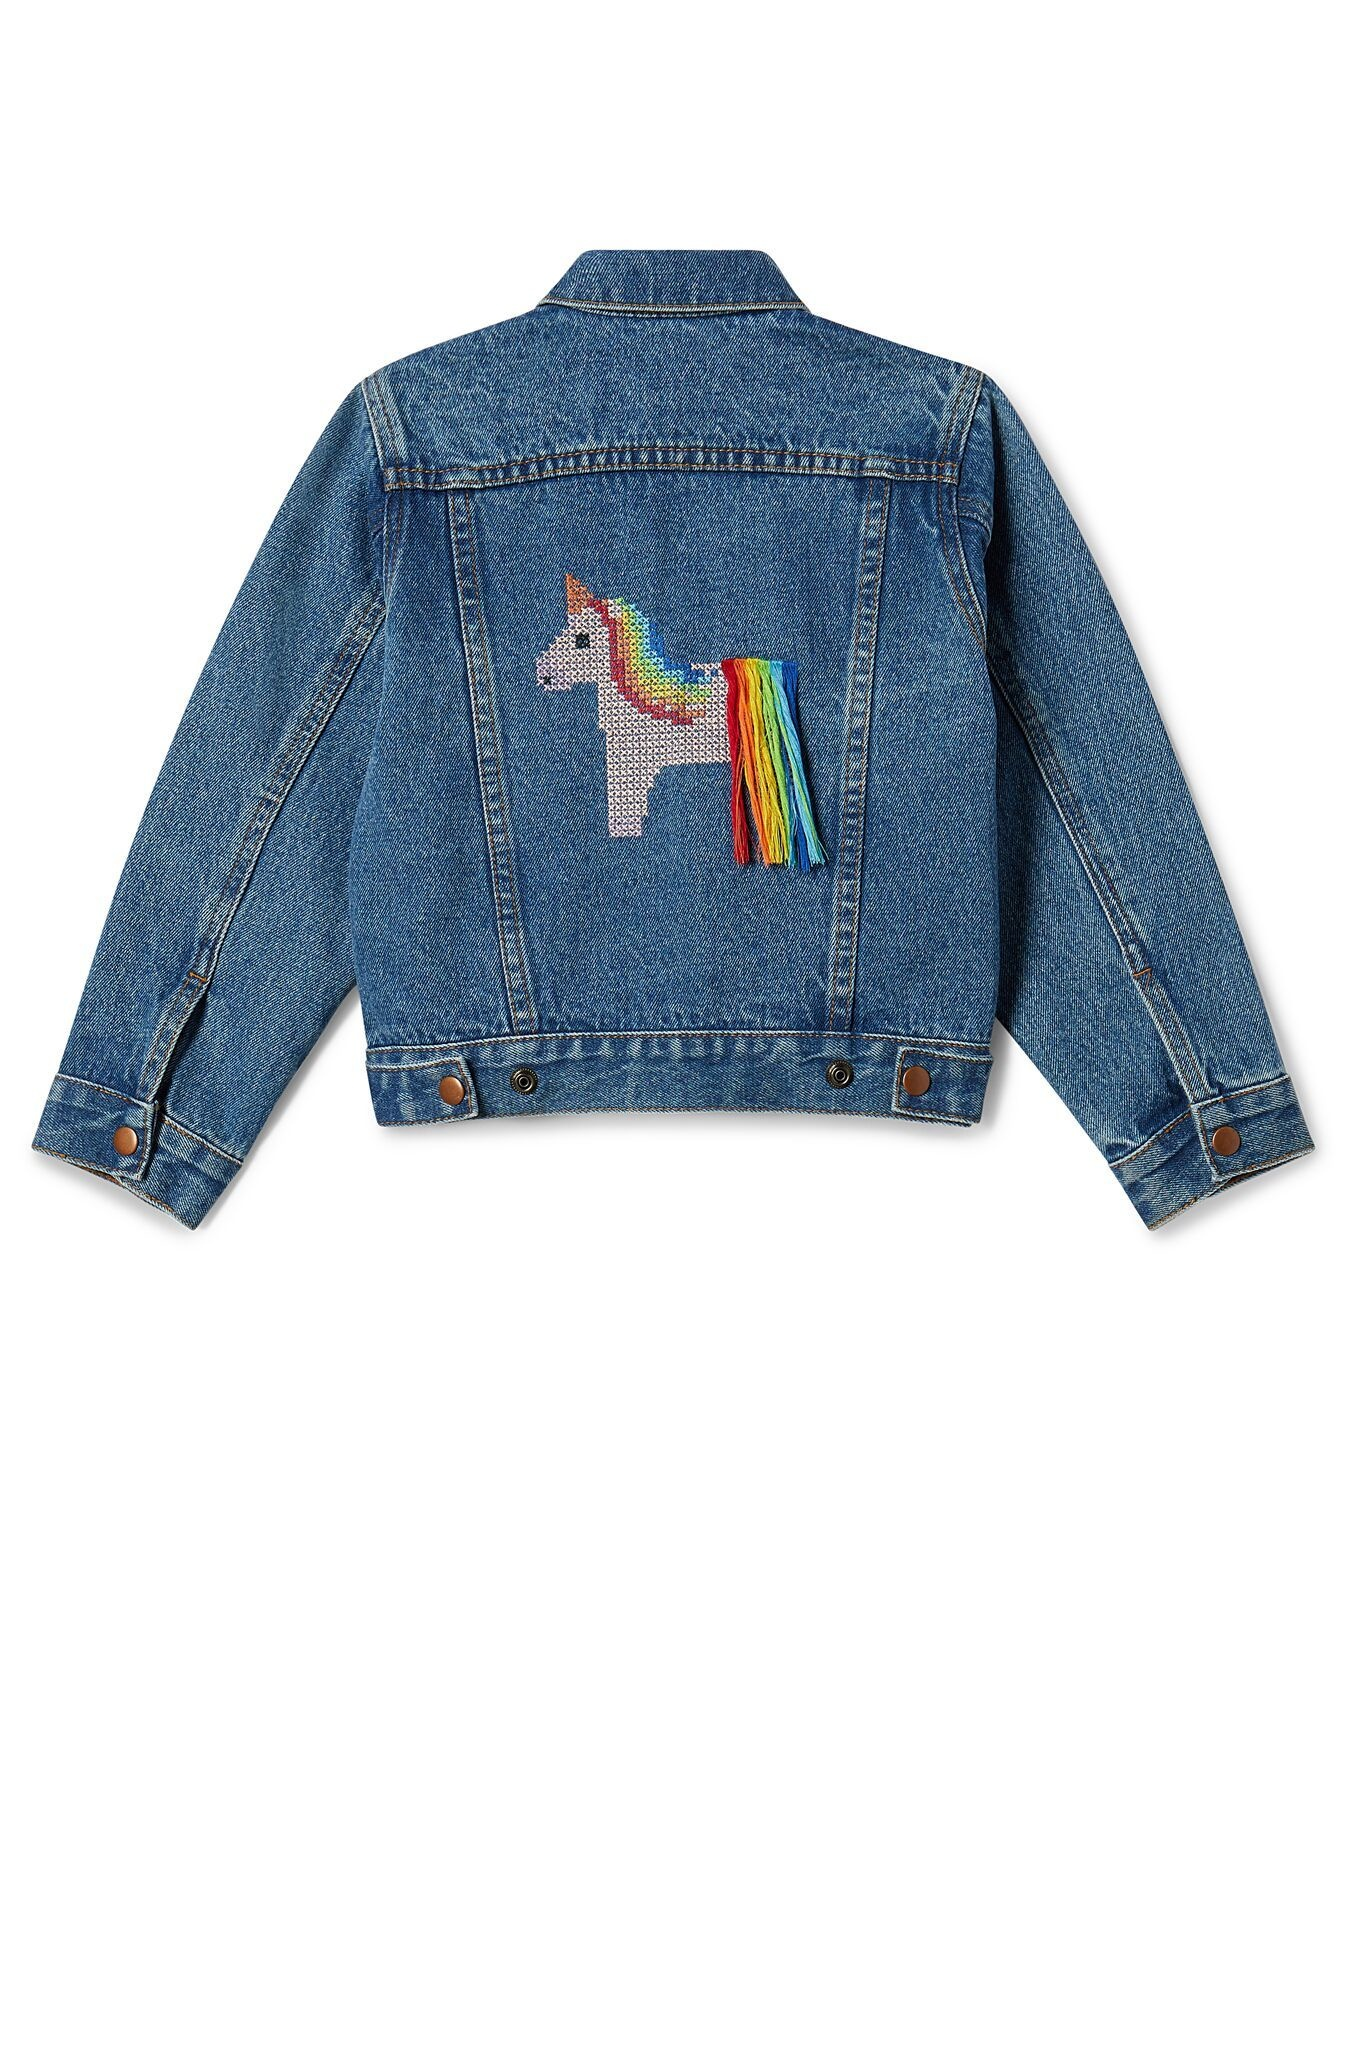 PLUM Phyllis Unicorn Jacket